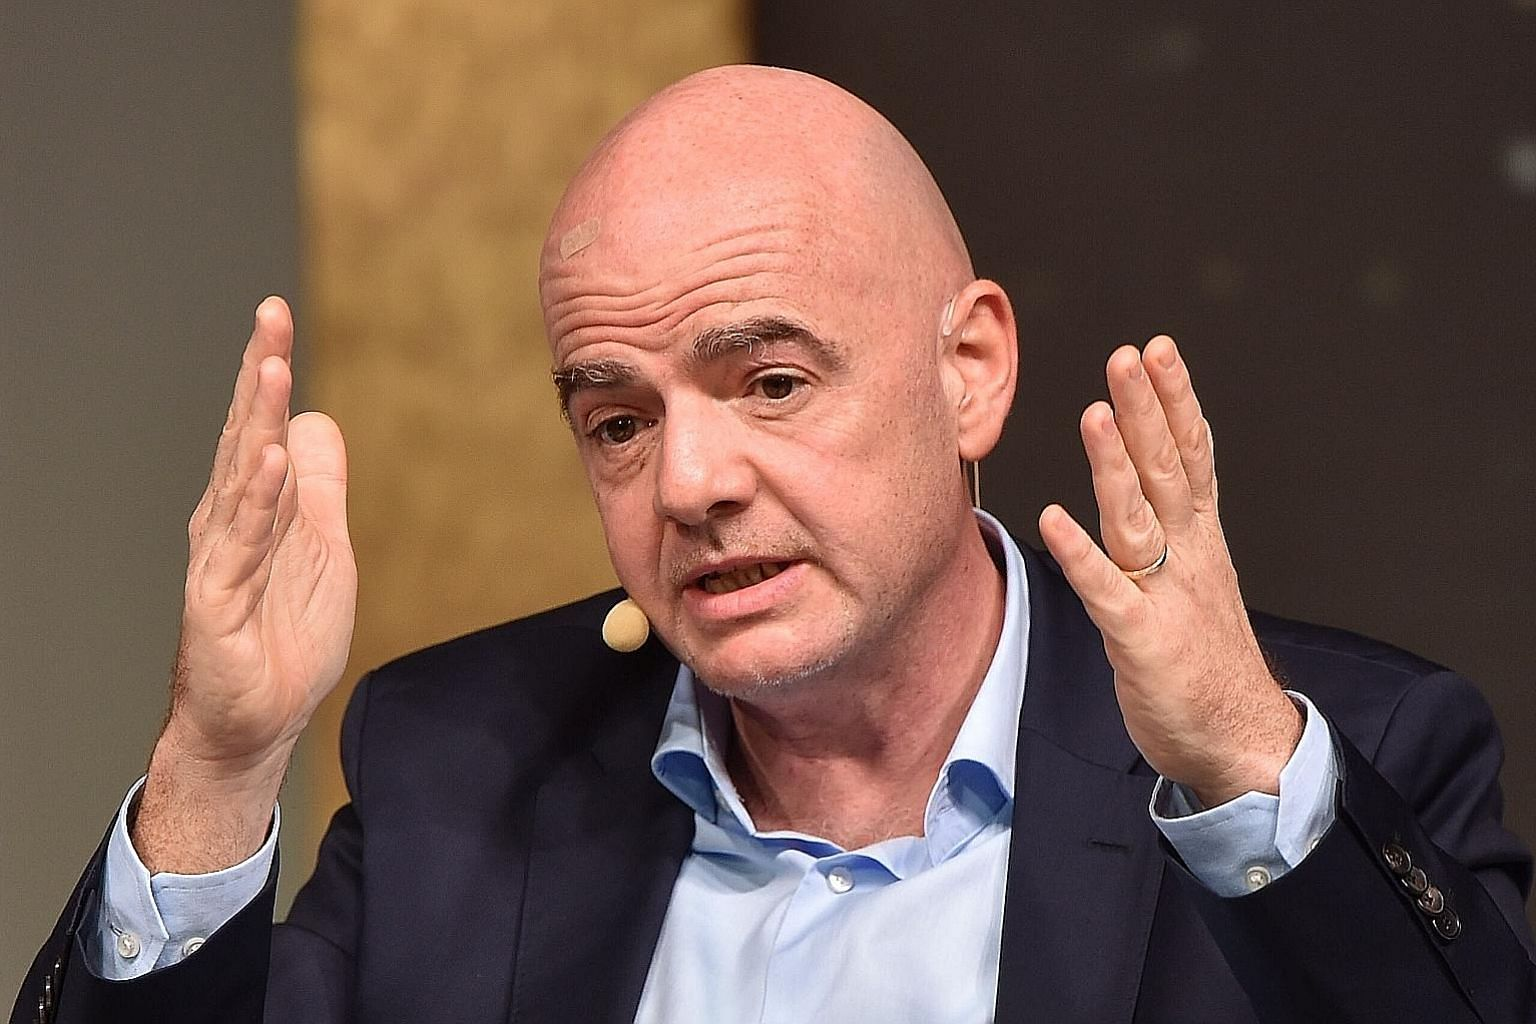 Gianni Infantino had vowed to clean up scandal-plagued Fifa when he was first elected its president in 2016.